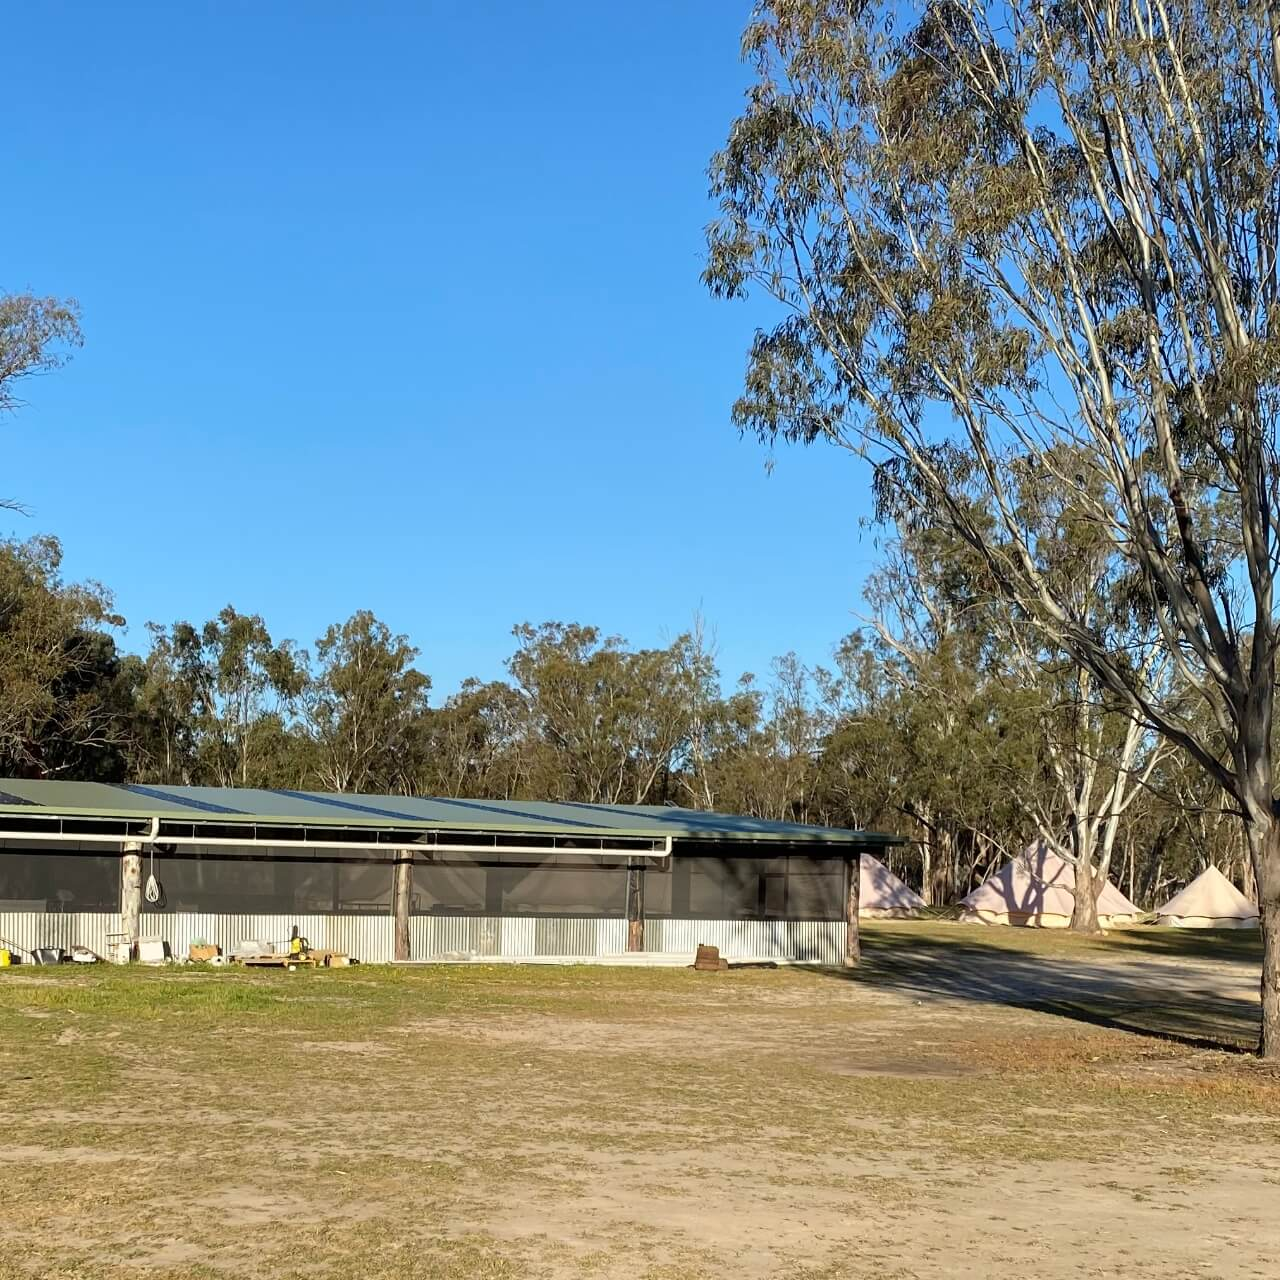 Kitchen facilities at the Murray Life Adventures camping ground in Echuca